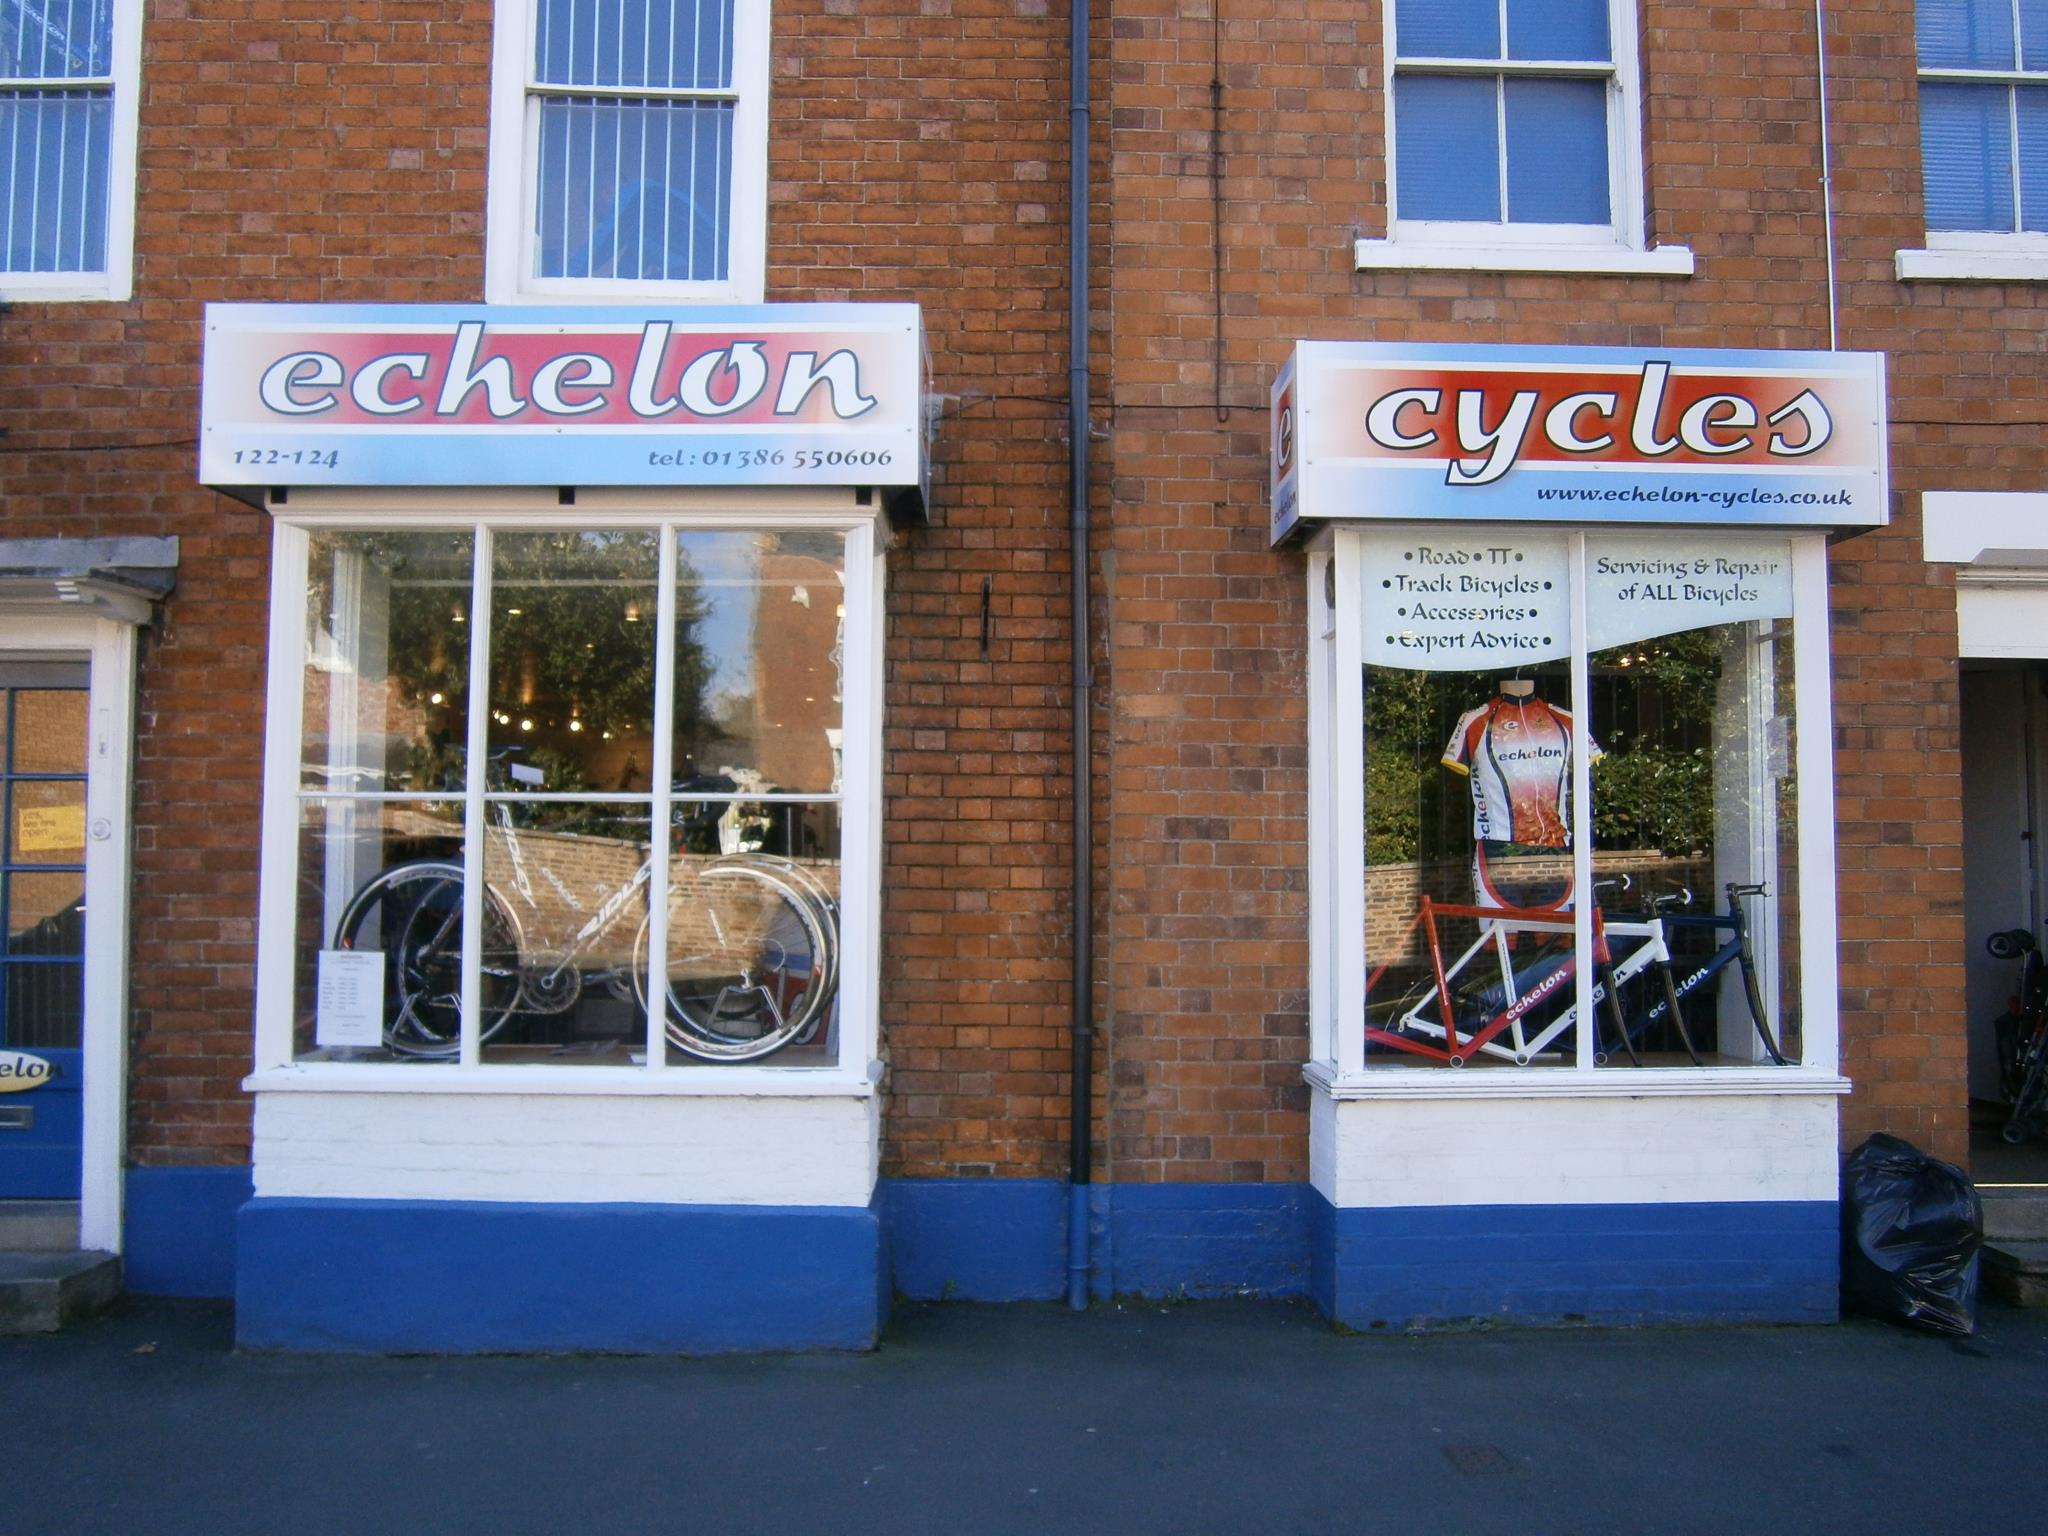 Echelon Cycles in Pershore - Photograph rights belong to Echelon Cycles